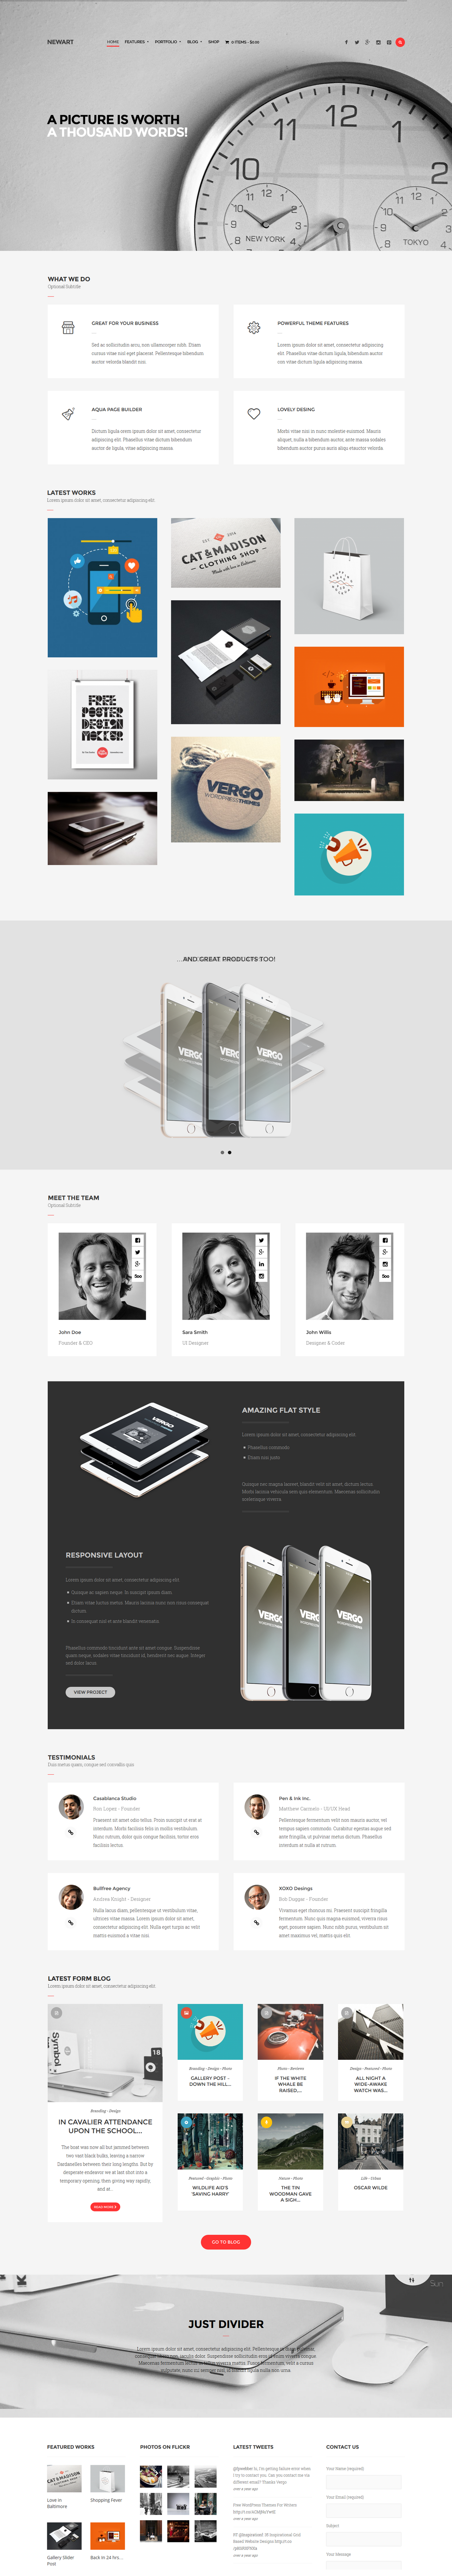 NewArt - Stylish Art Portfolio Theme by sandracz